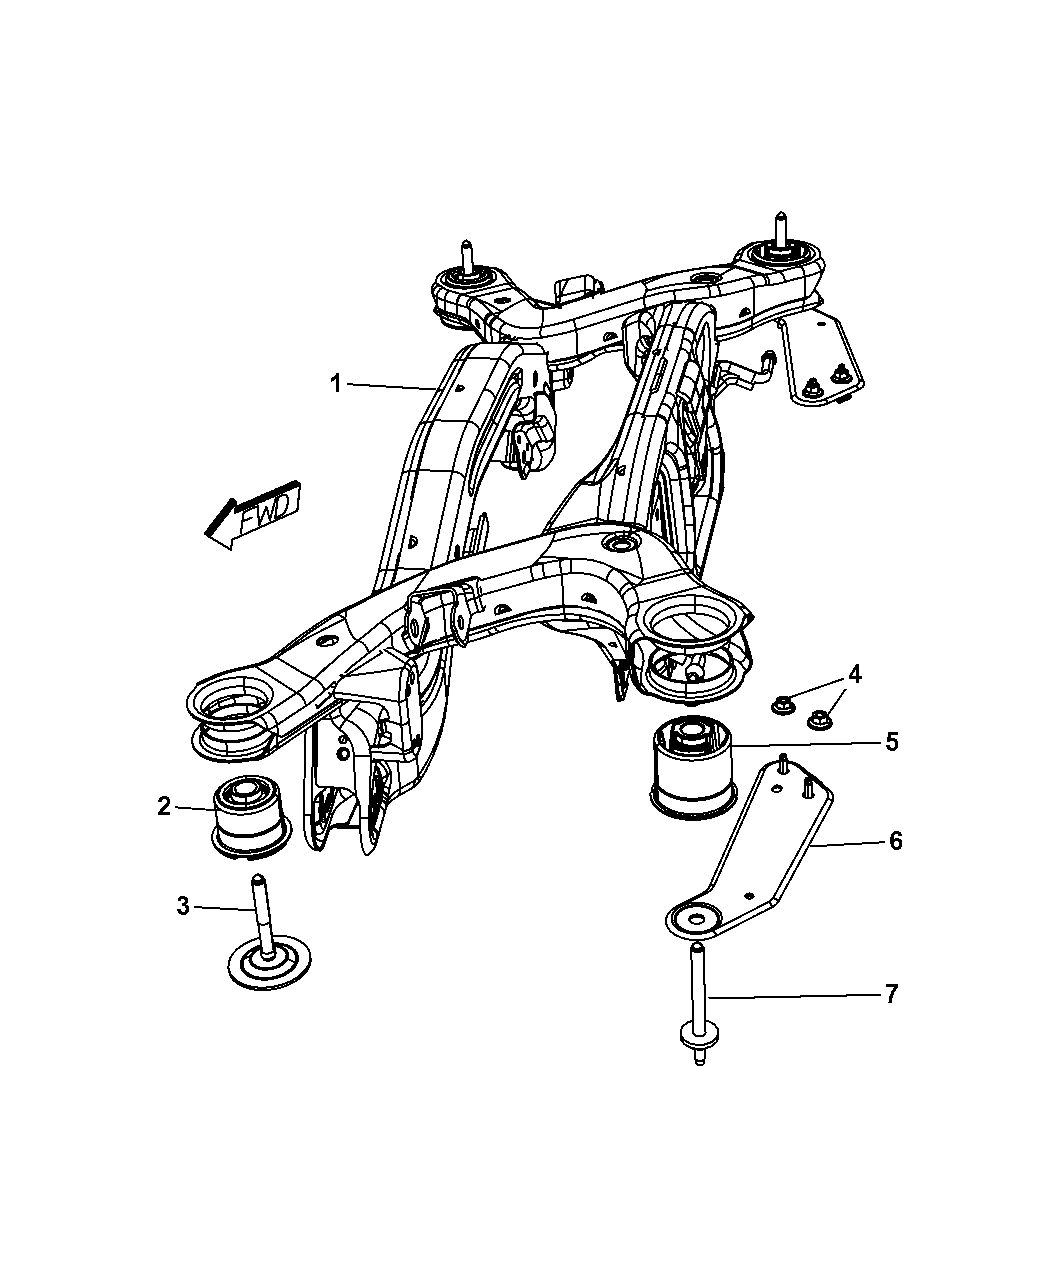 2013 Chrysler 200 Crossmember  Rear Suspension